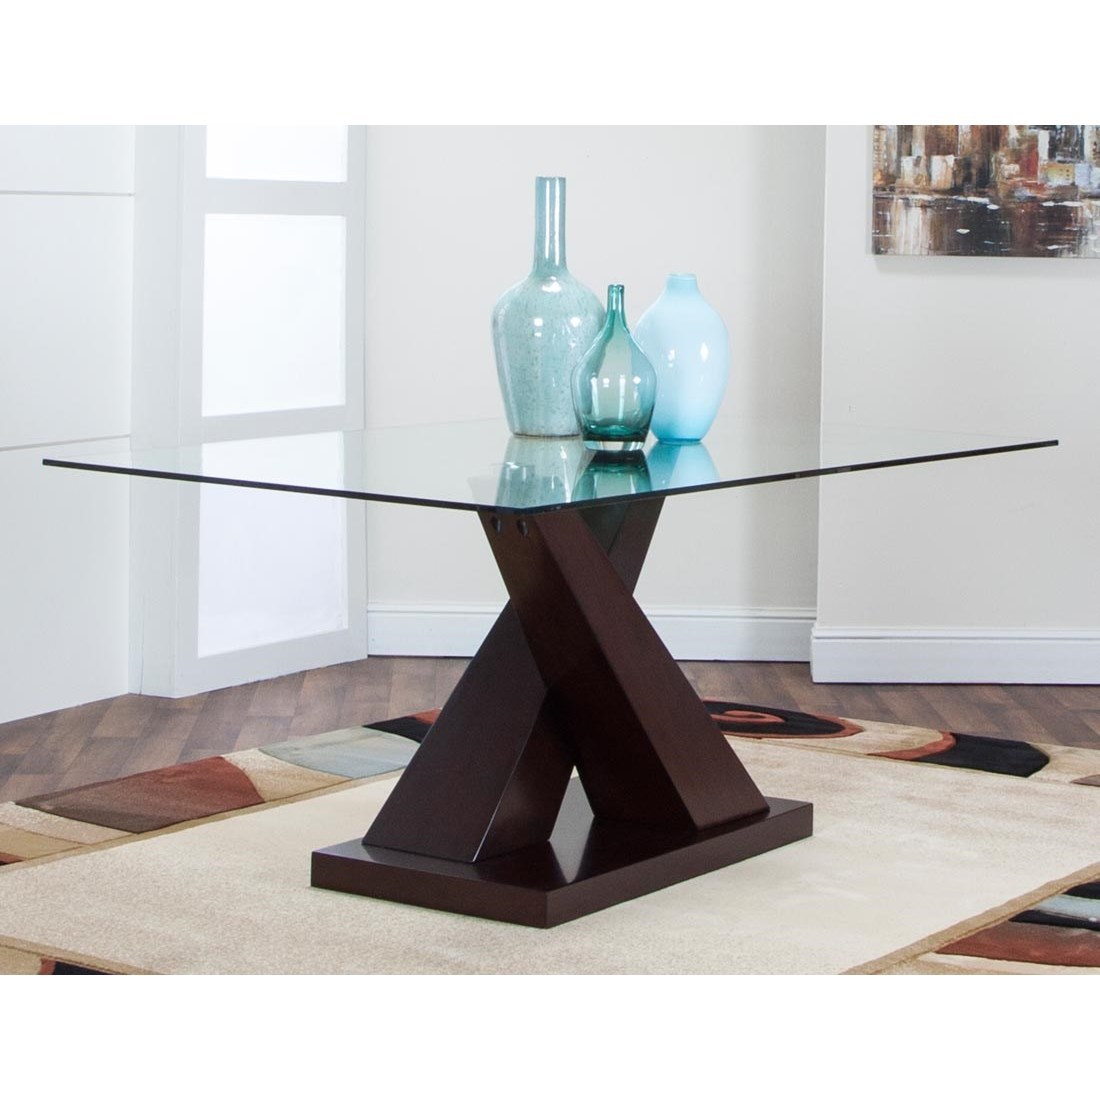 Sienna Dining Table by Cramco, Inc at Lapeer Furniture & Mattress Center